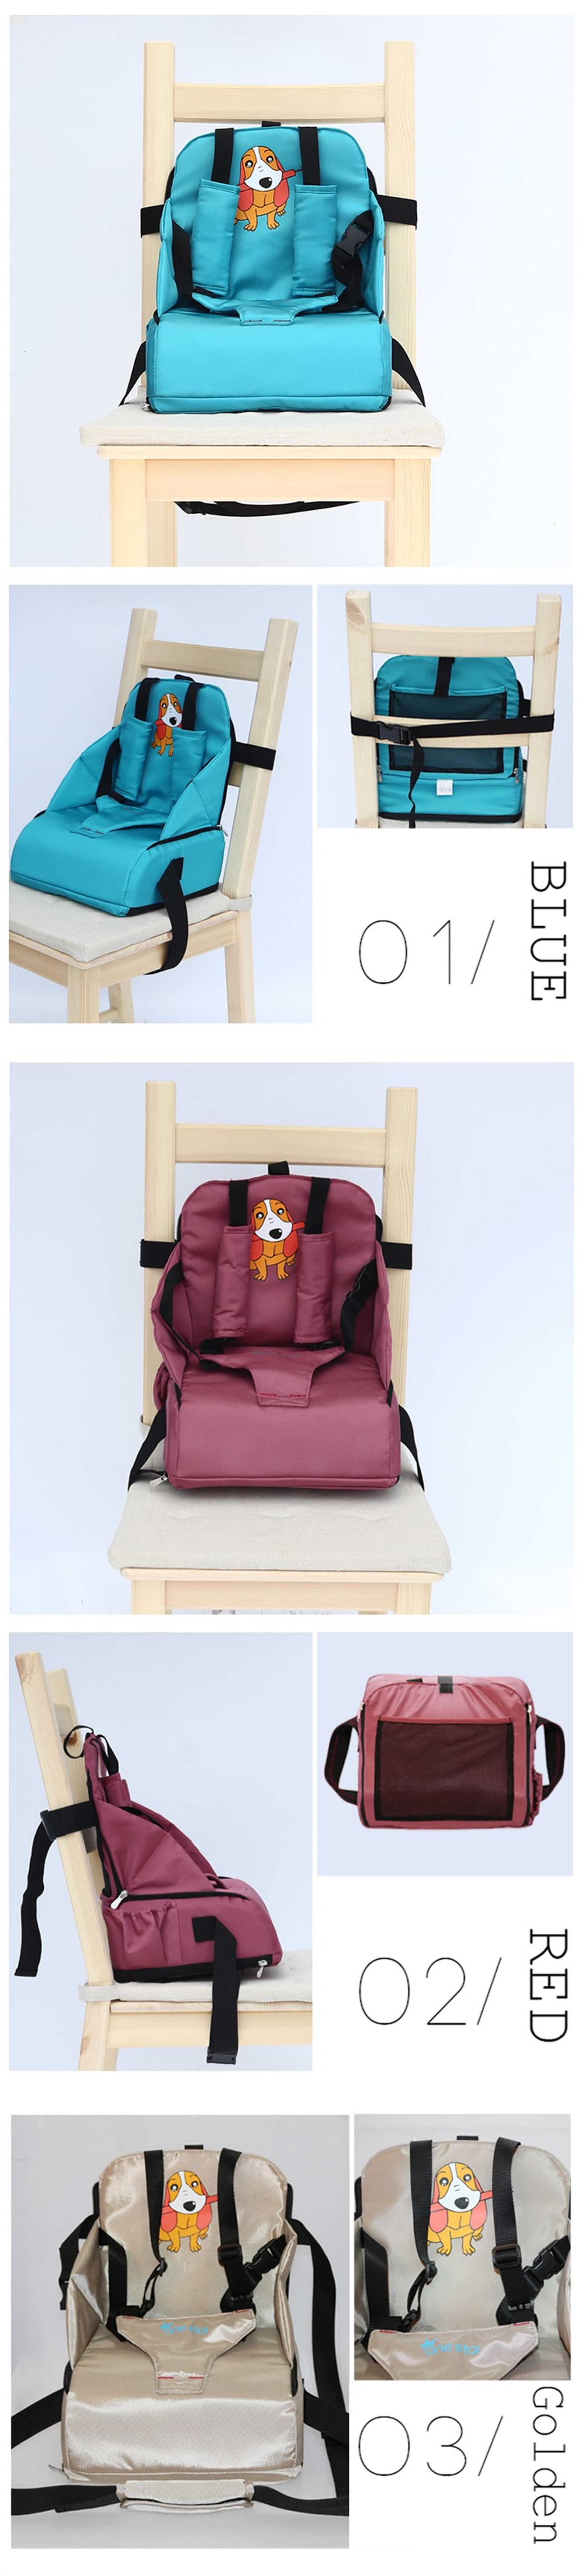 New Amazon Hot Selling Products Portable Folding Baby Booster Seat